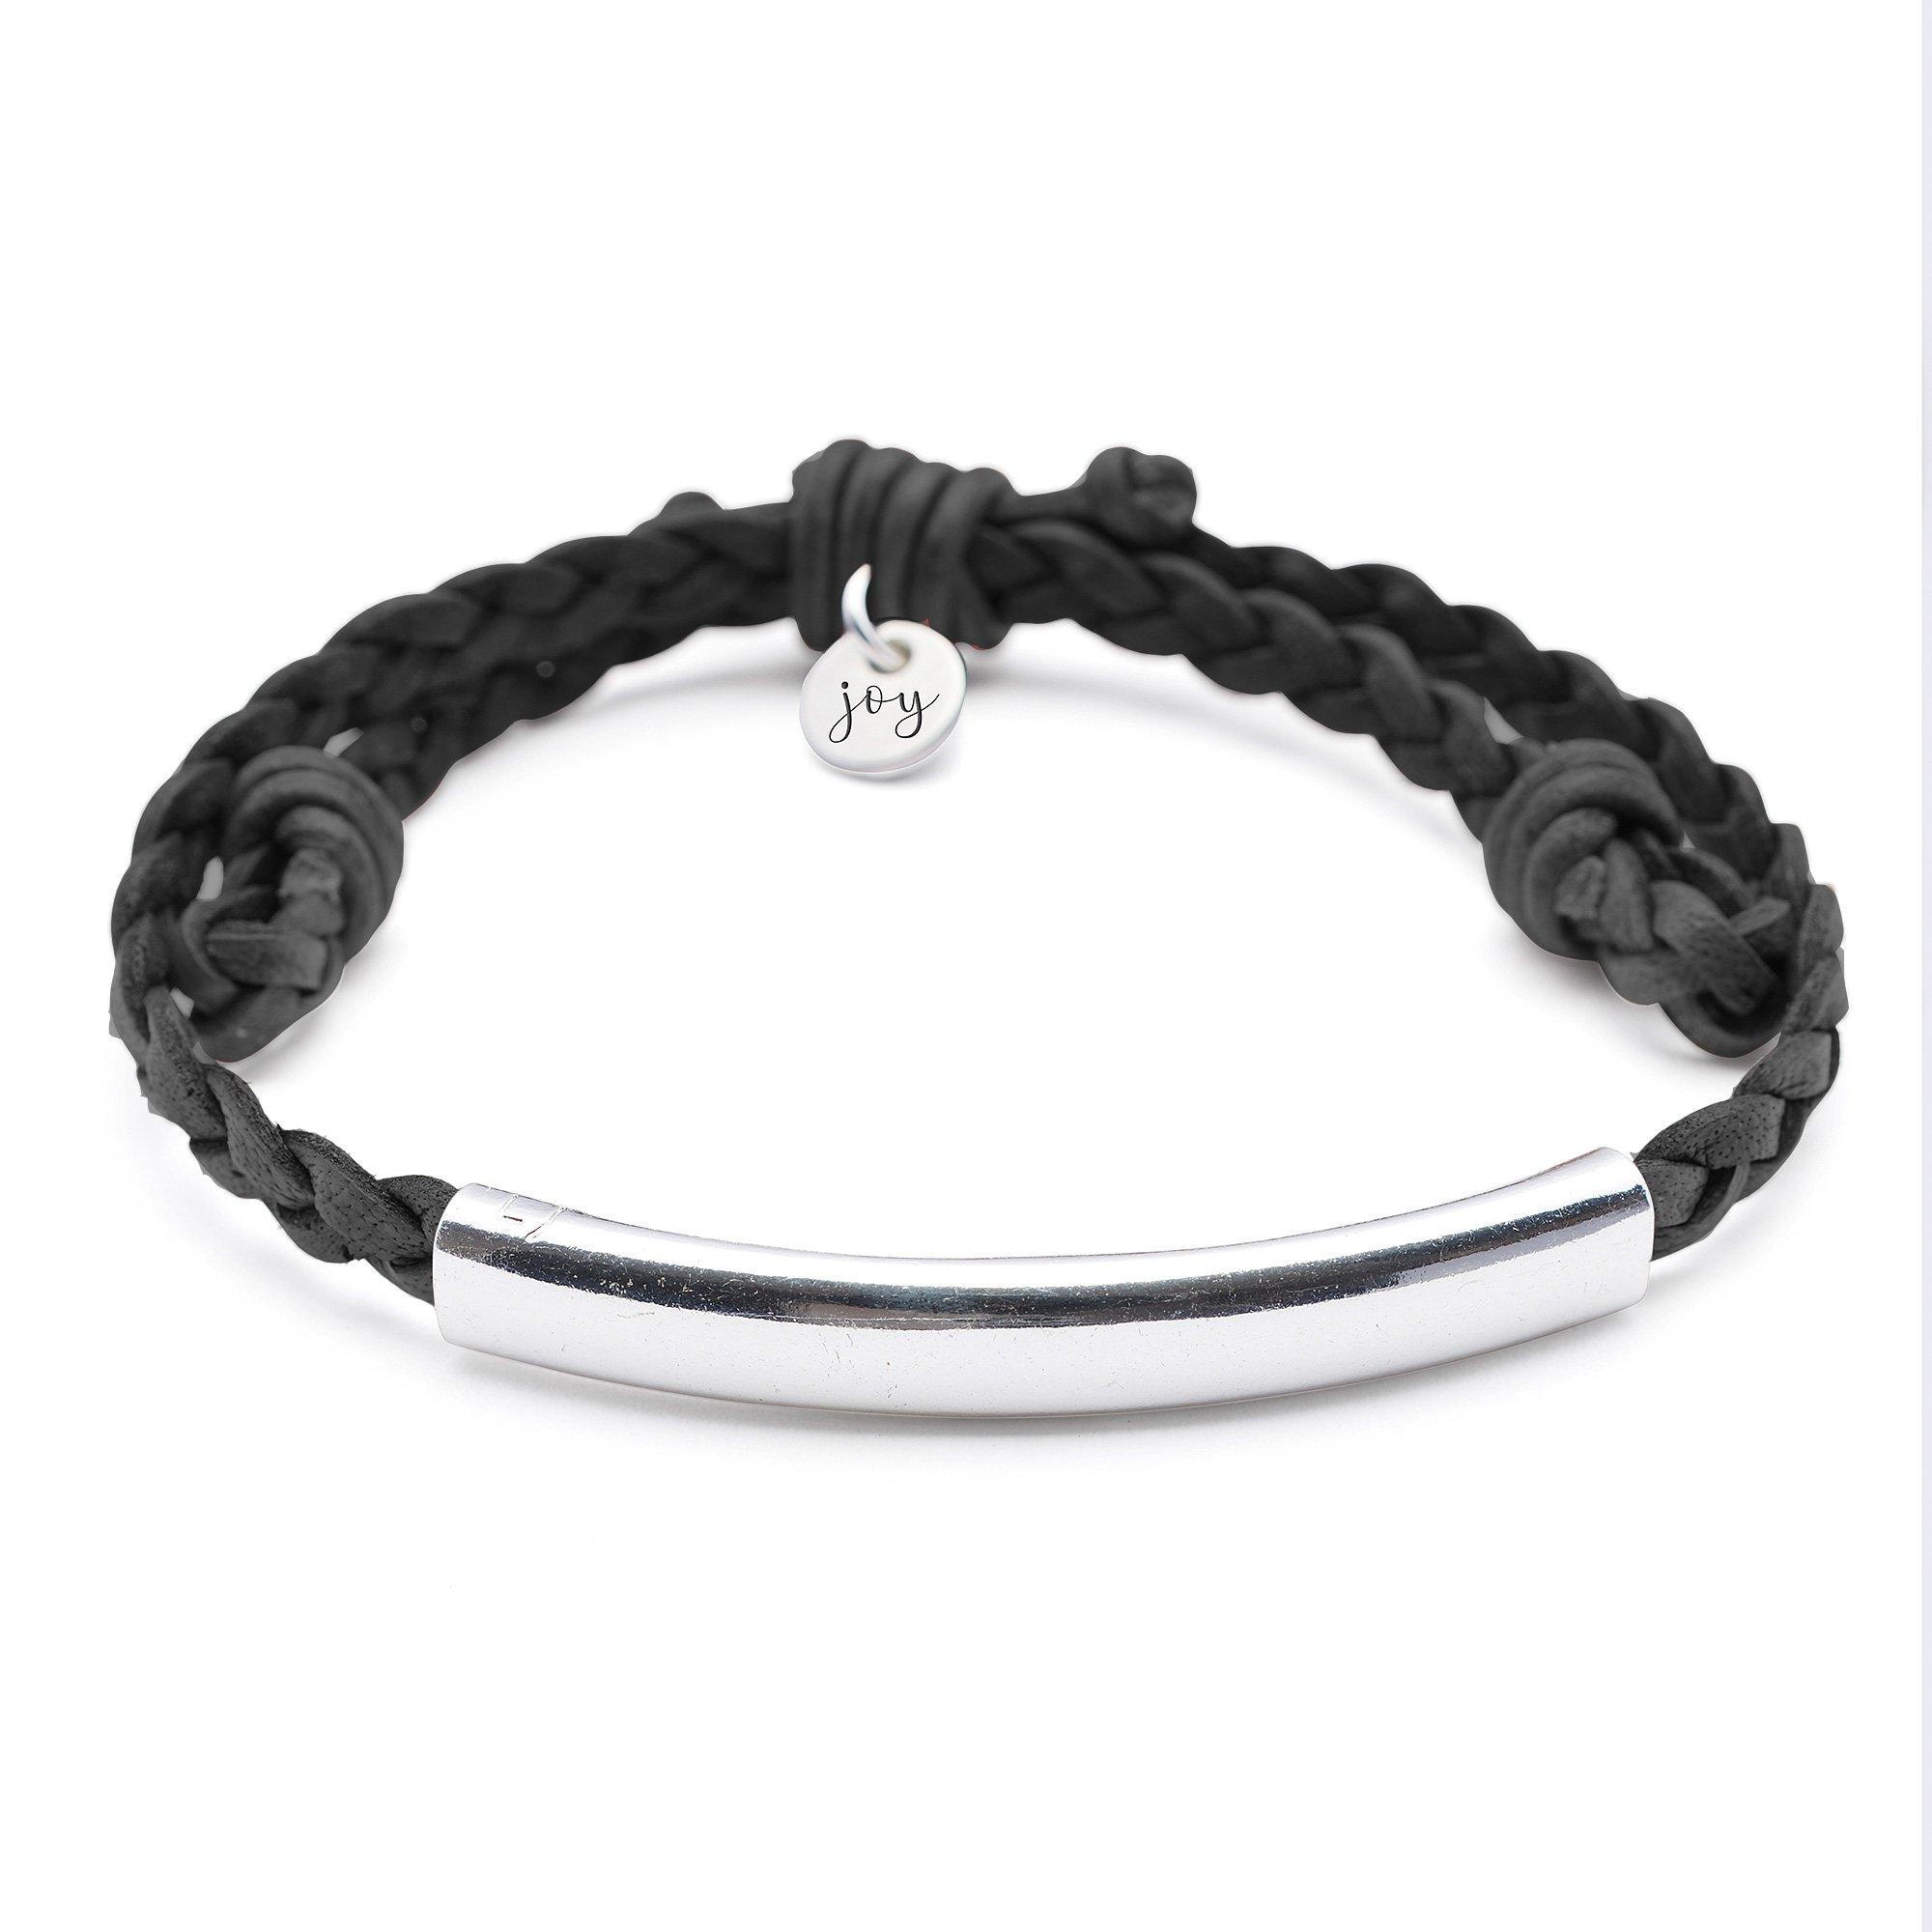 Lizzy James Wish Adjustable Braided Black Leather Bracelet with Silver Plated Crescent by Lizzy James